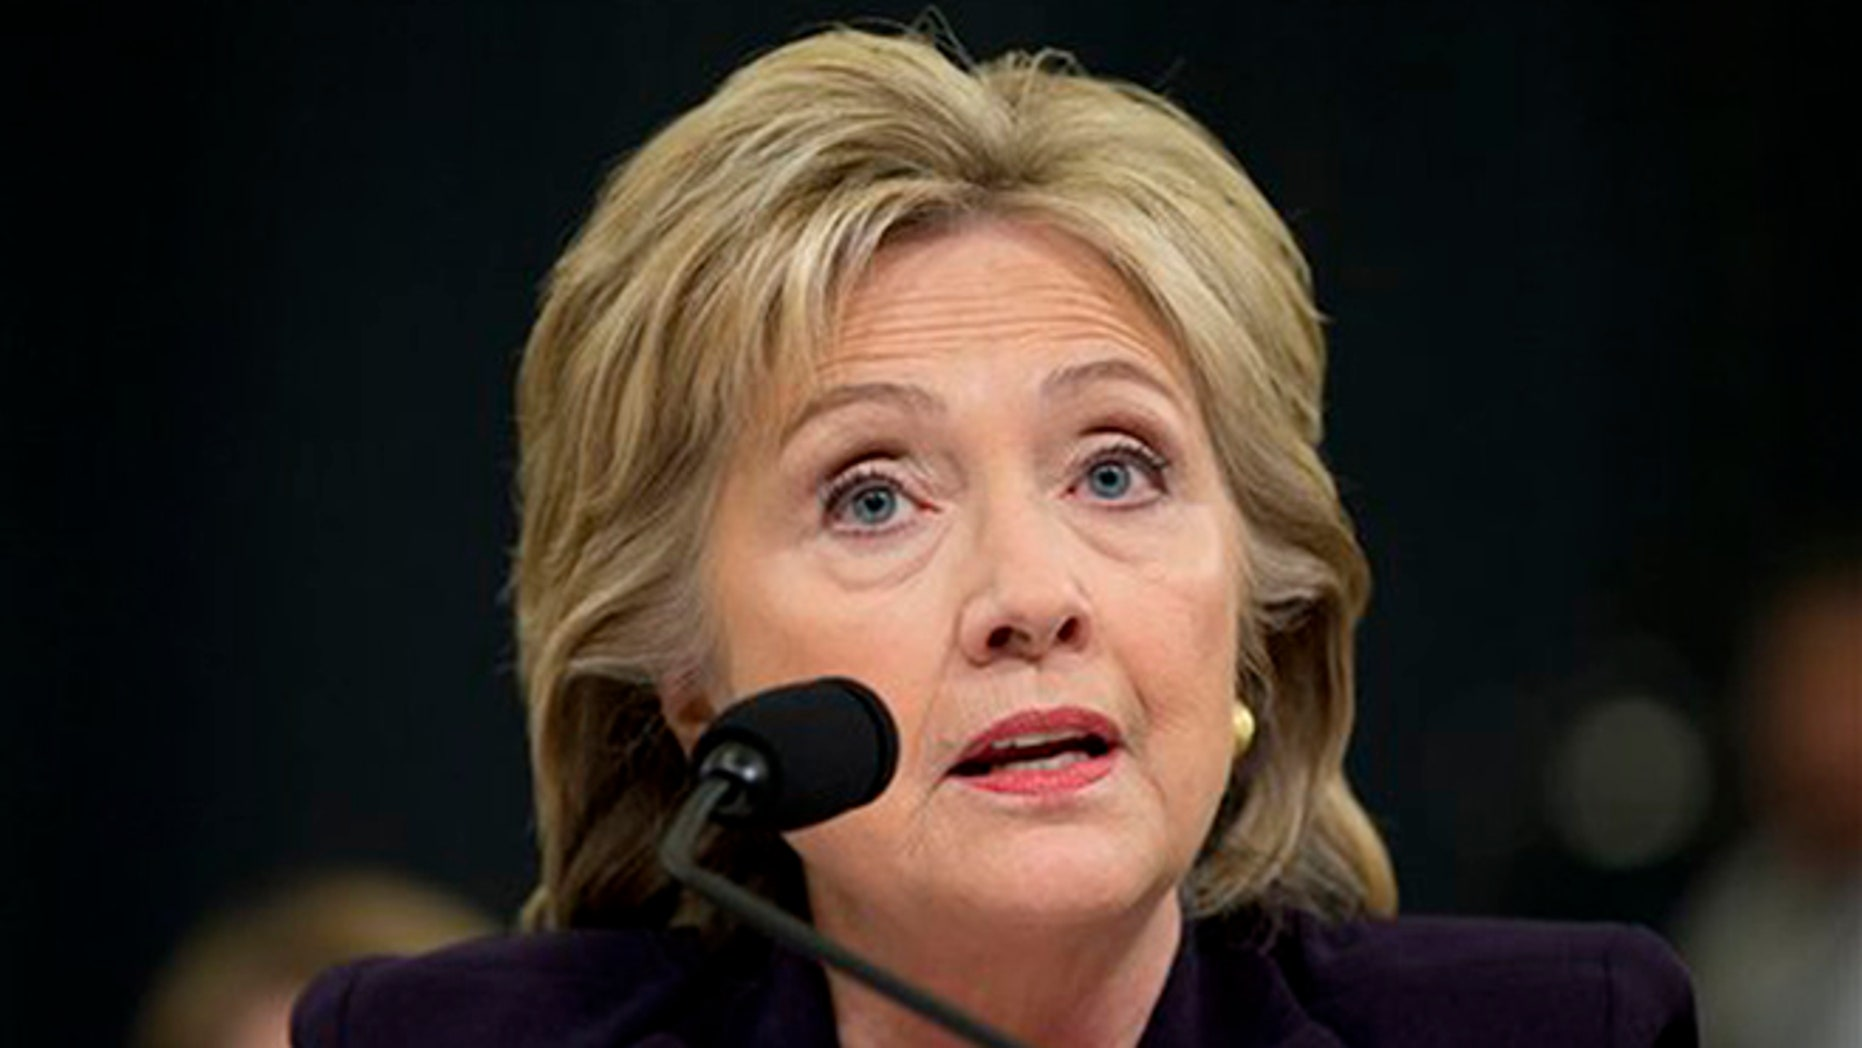 Democratic presidential candidate, former Secretary of State Hillary Rodham Clinton testifies on Capitol Hill in Washington, Thursday, Oct. 22, 2015, before the House Benghazi Committee. (AP Photo/Evan Vucci)